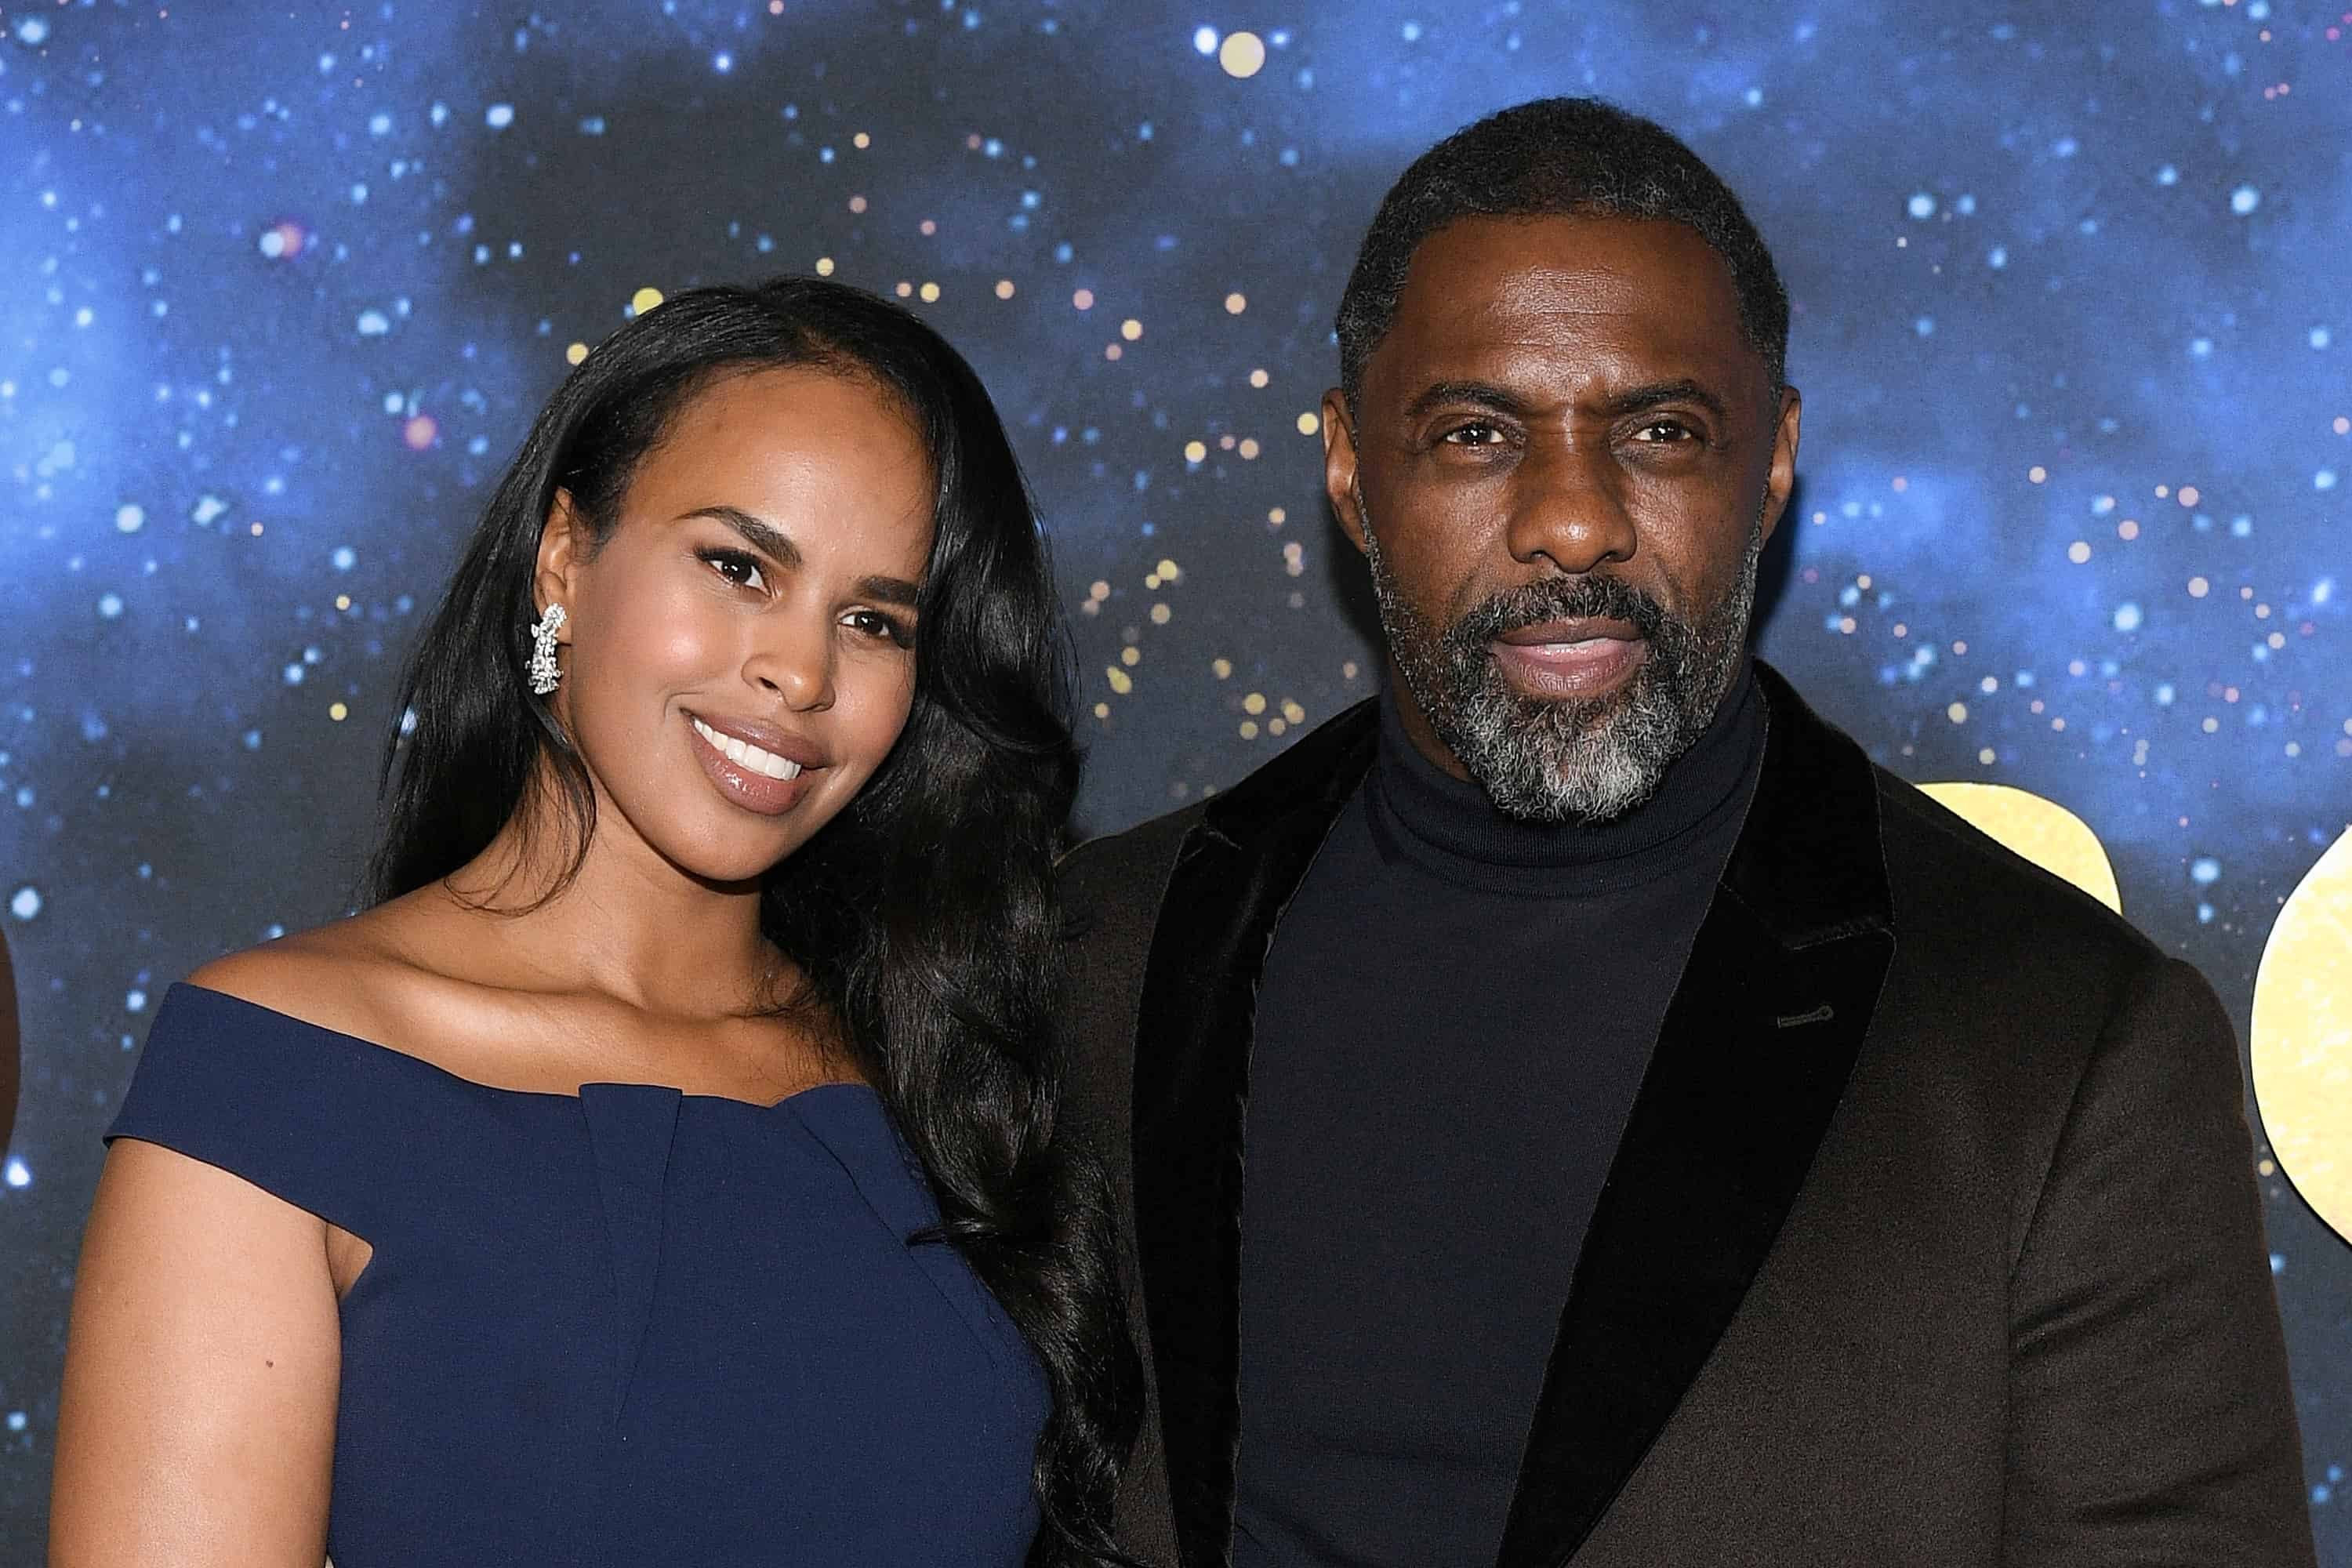 Idris Elba's wife Sabrina Elba reveals that she has tested positive for coronavirus a week after her husband's positive diagnosis.